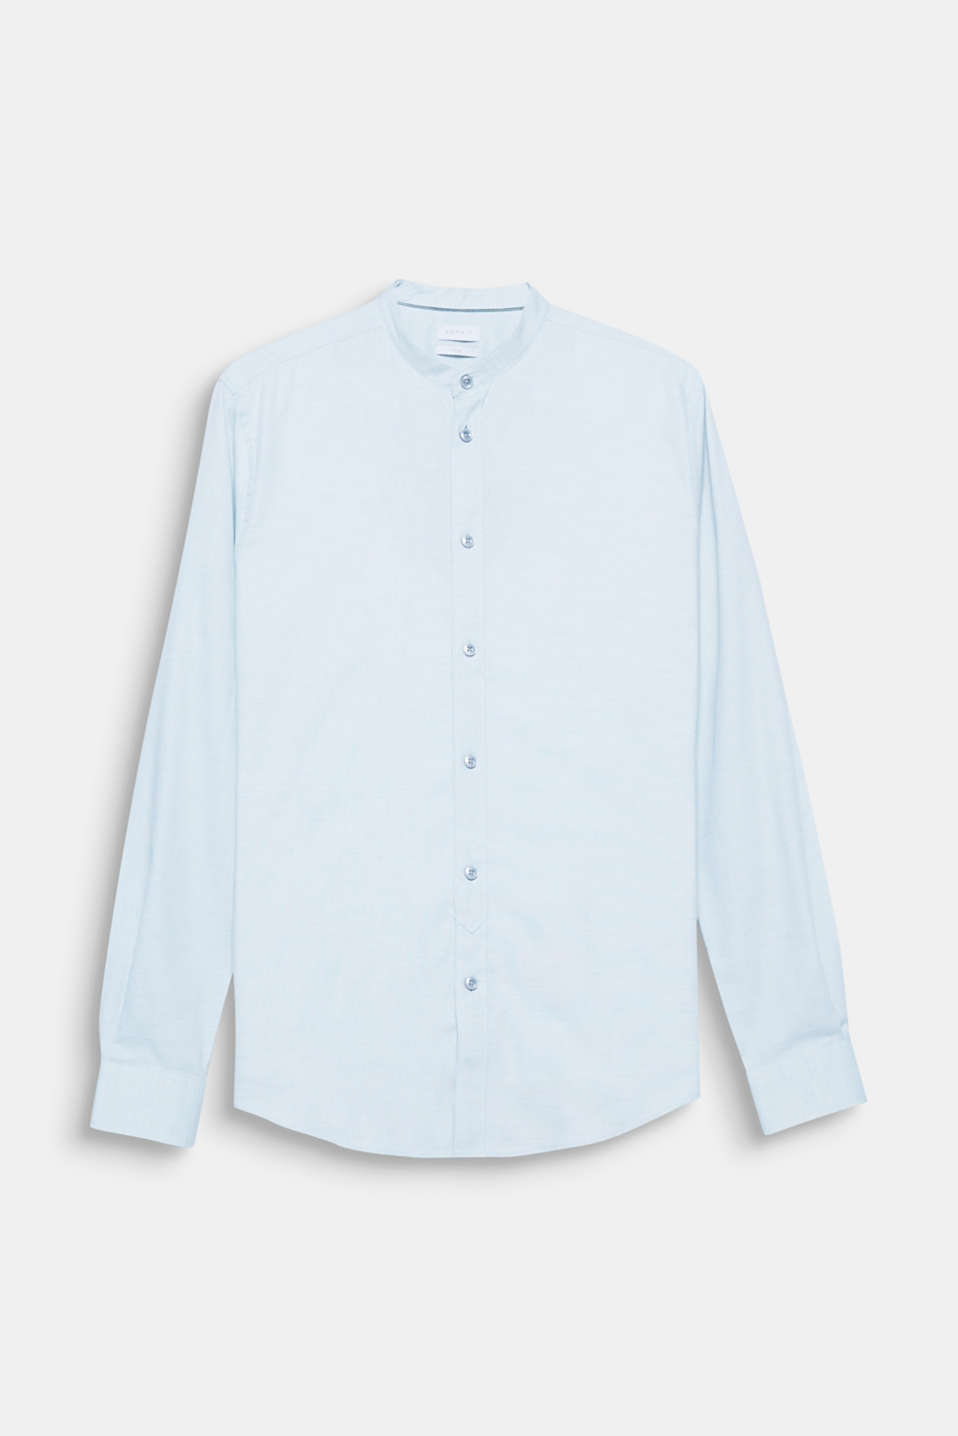 The fine print texture and narrow stand-up collar give this easy-iron shirt its exciting look.